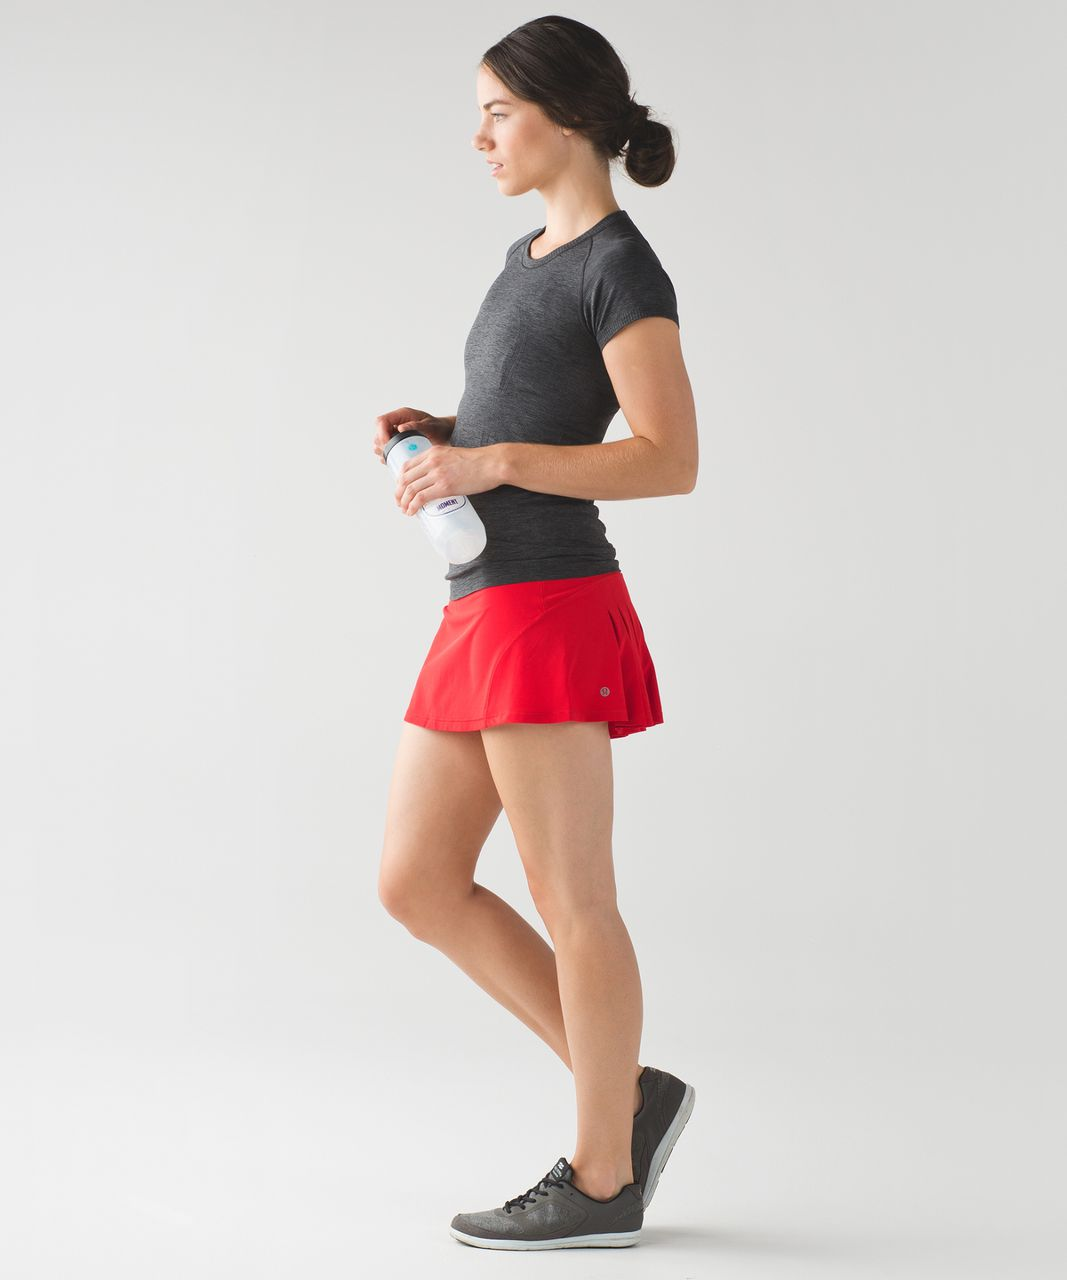 Lululemon Circuit Breaker Skirt (Regular) - True Red